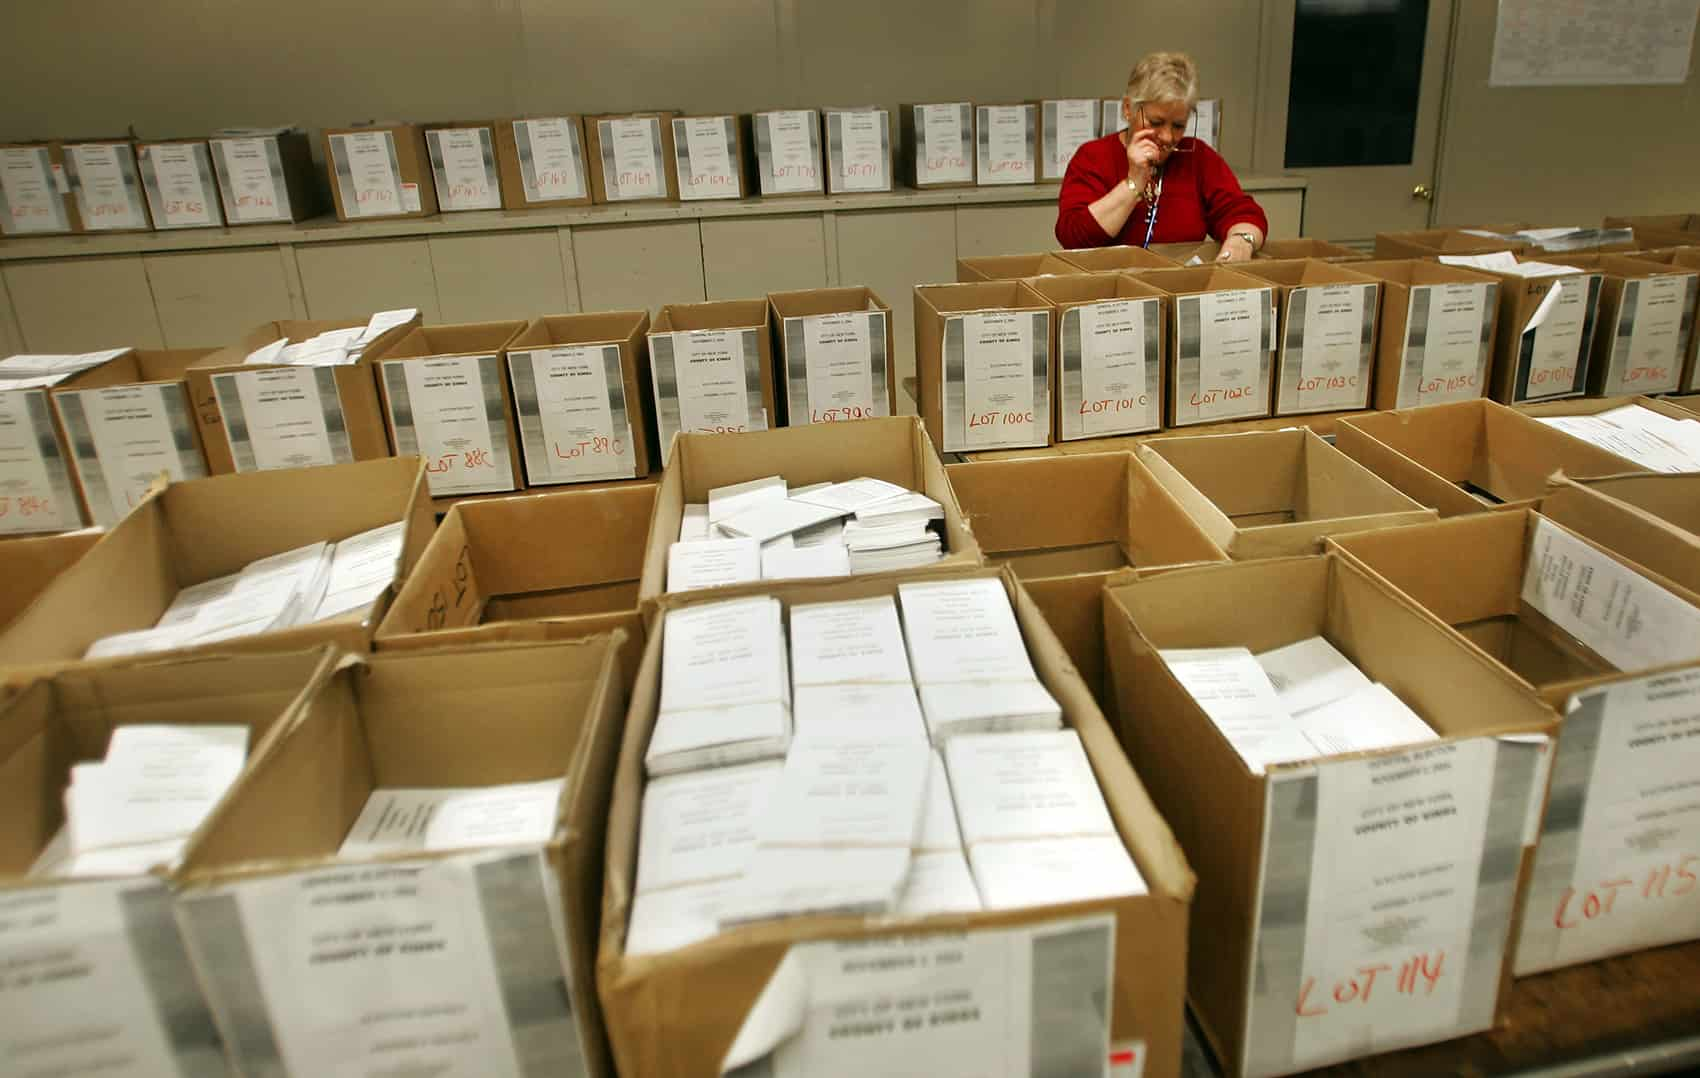 Expat voting: A poll worker looks over thousands of absentee ballots